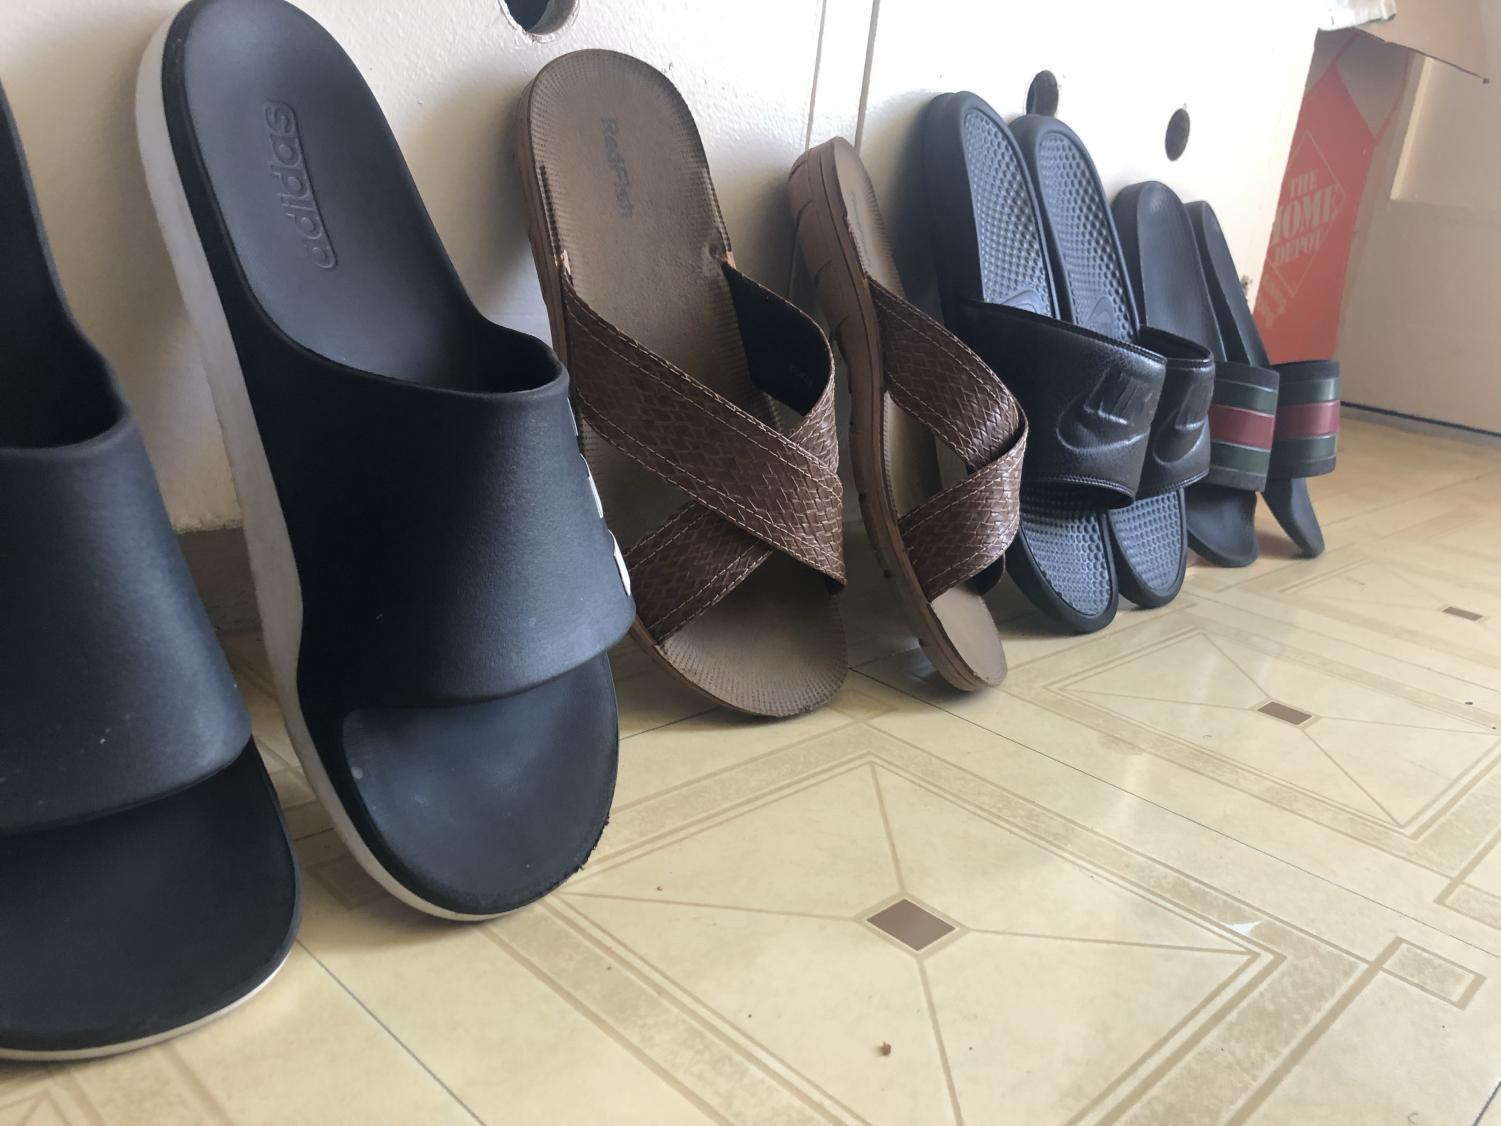 Slippers lined up inside an apartment